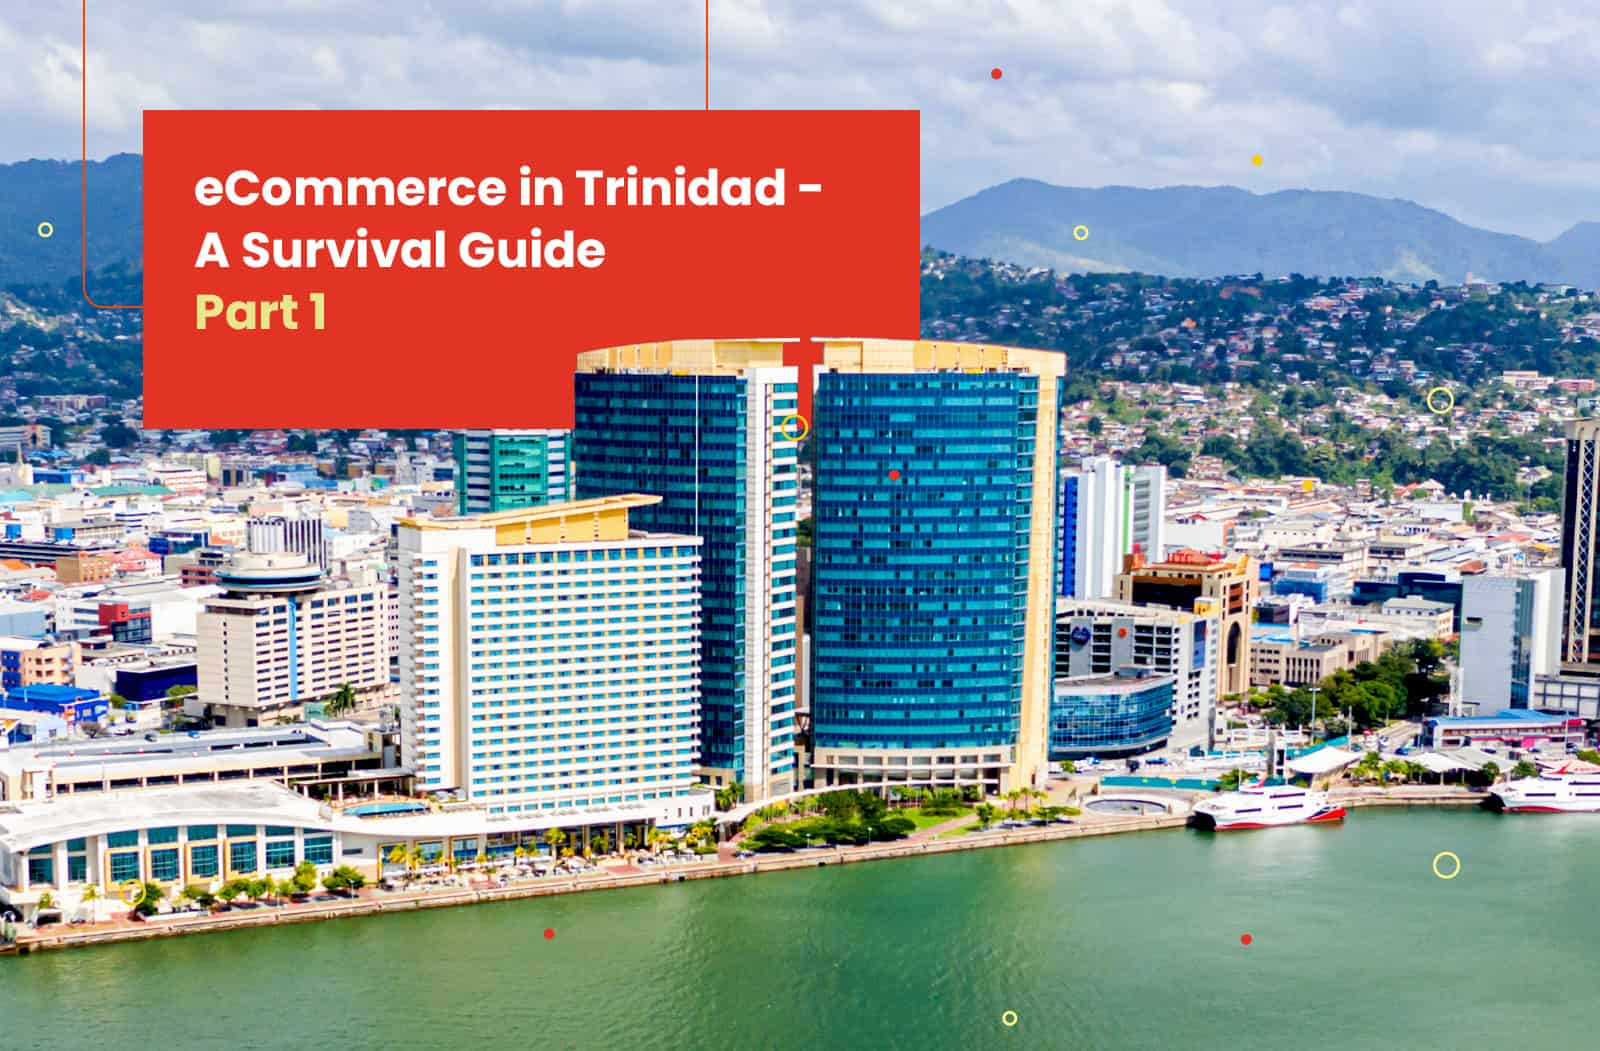 eCommerce in Trinidad - A Survival Guide